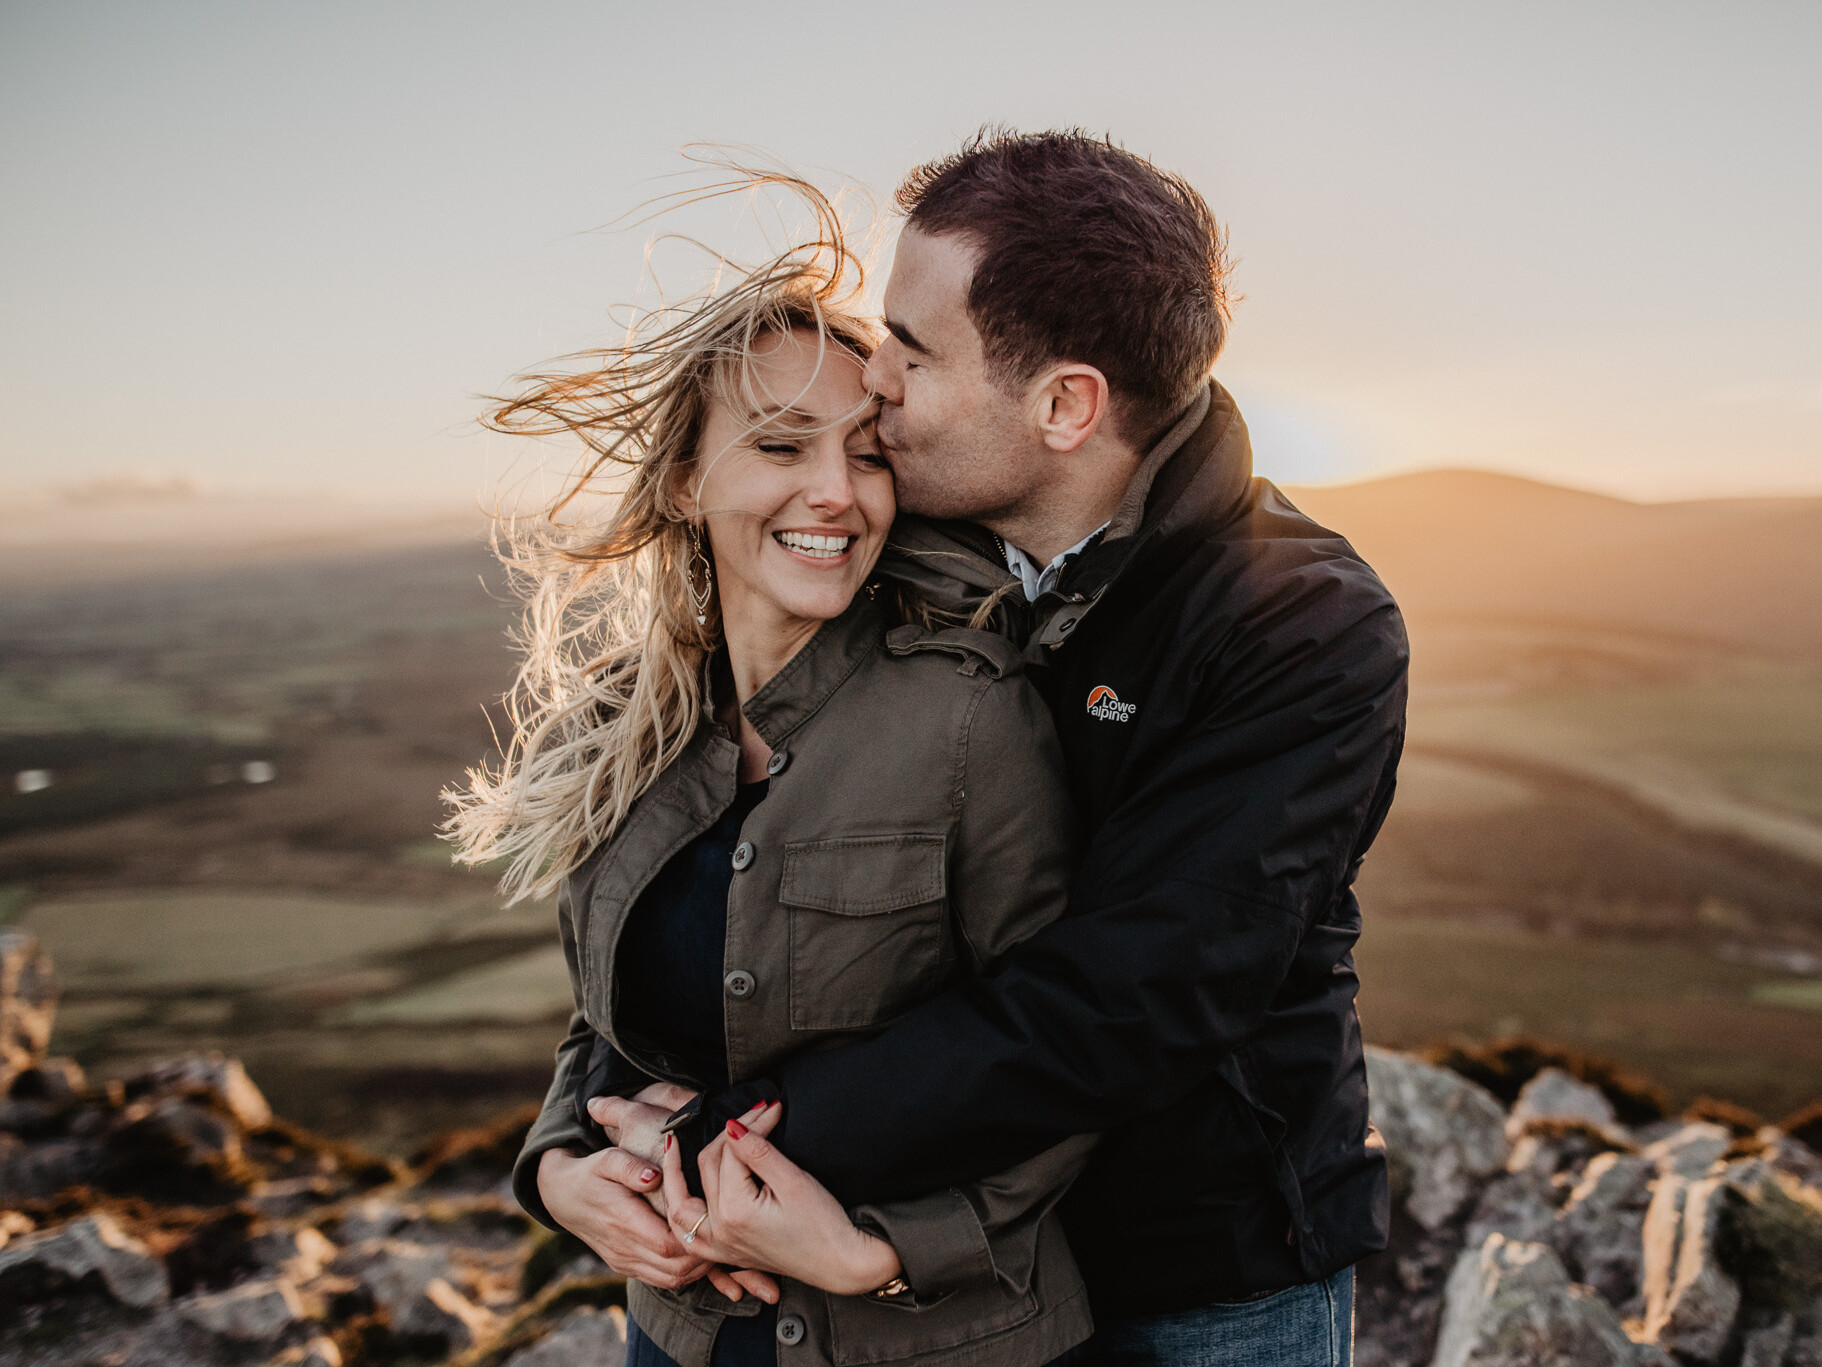 Pre Wedding photography at Great Sugar Loaf Wicklow near Dublin 2